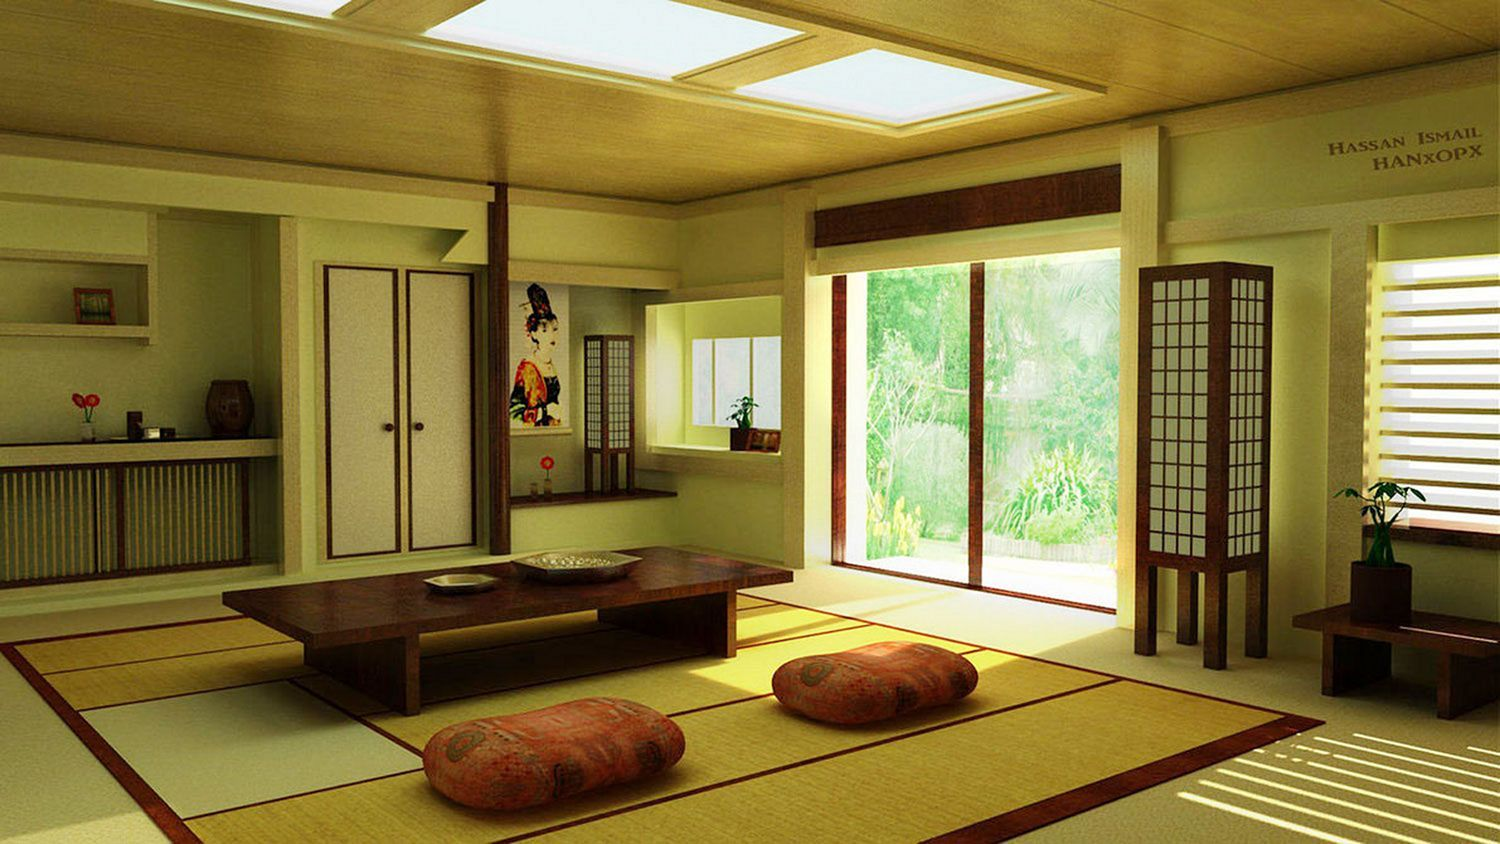 25 Simple Japanese Living Room Design Ideas That You Have To See